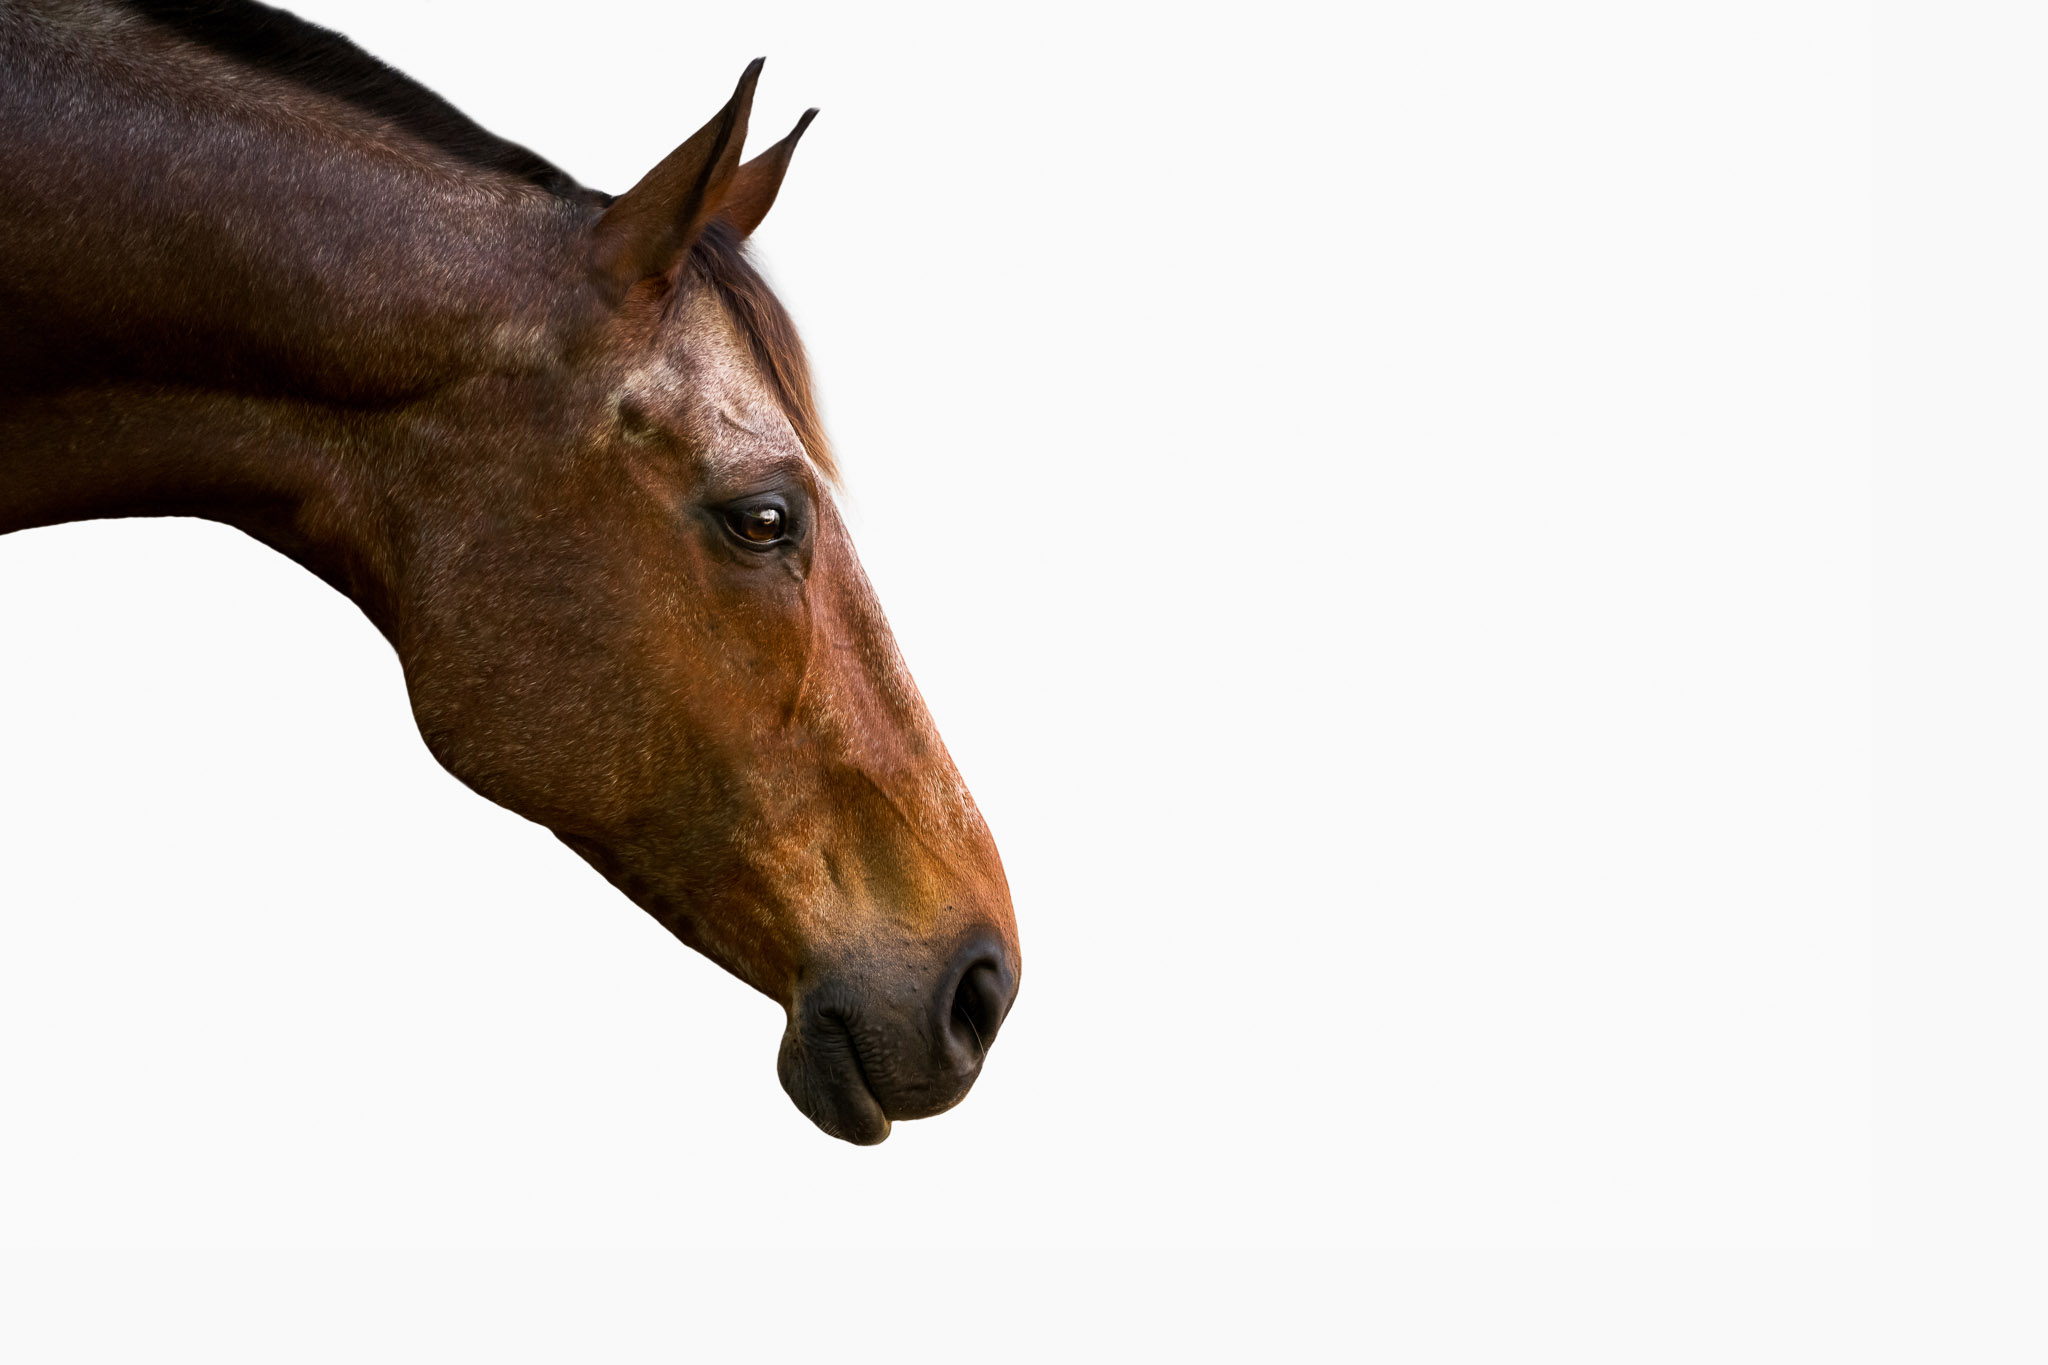 Studio style equine images on simple black or white backgrounds are timeless, classic, and dramatic images that turn your horse into art.